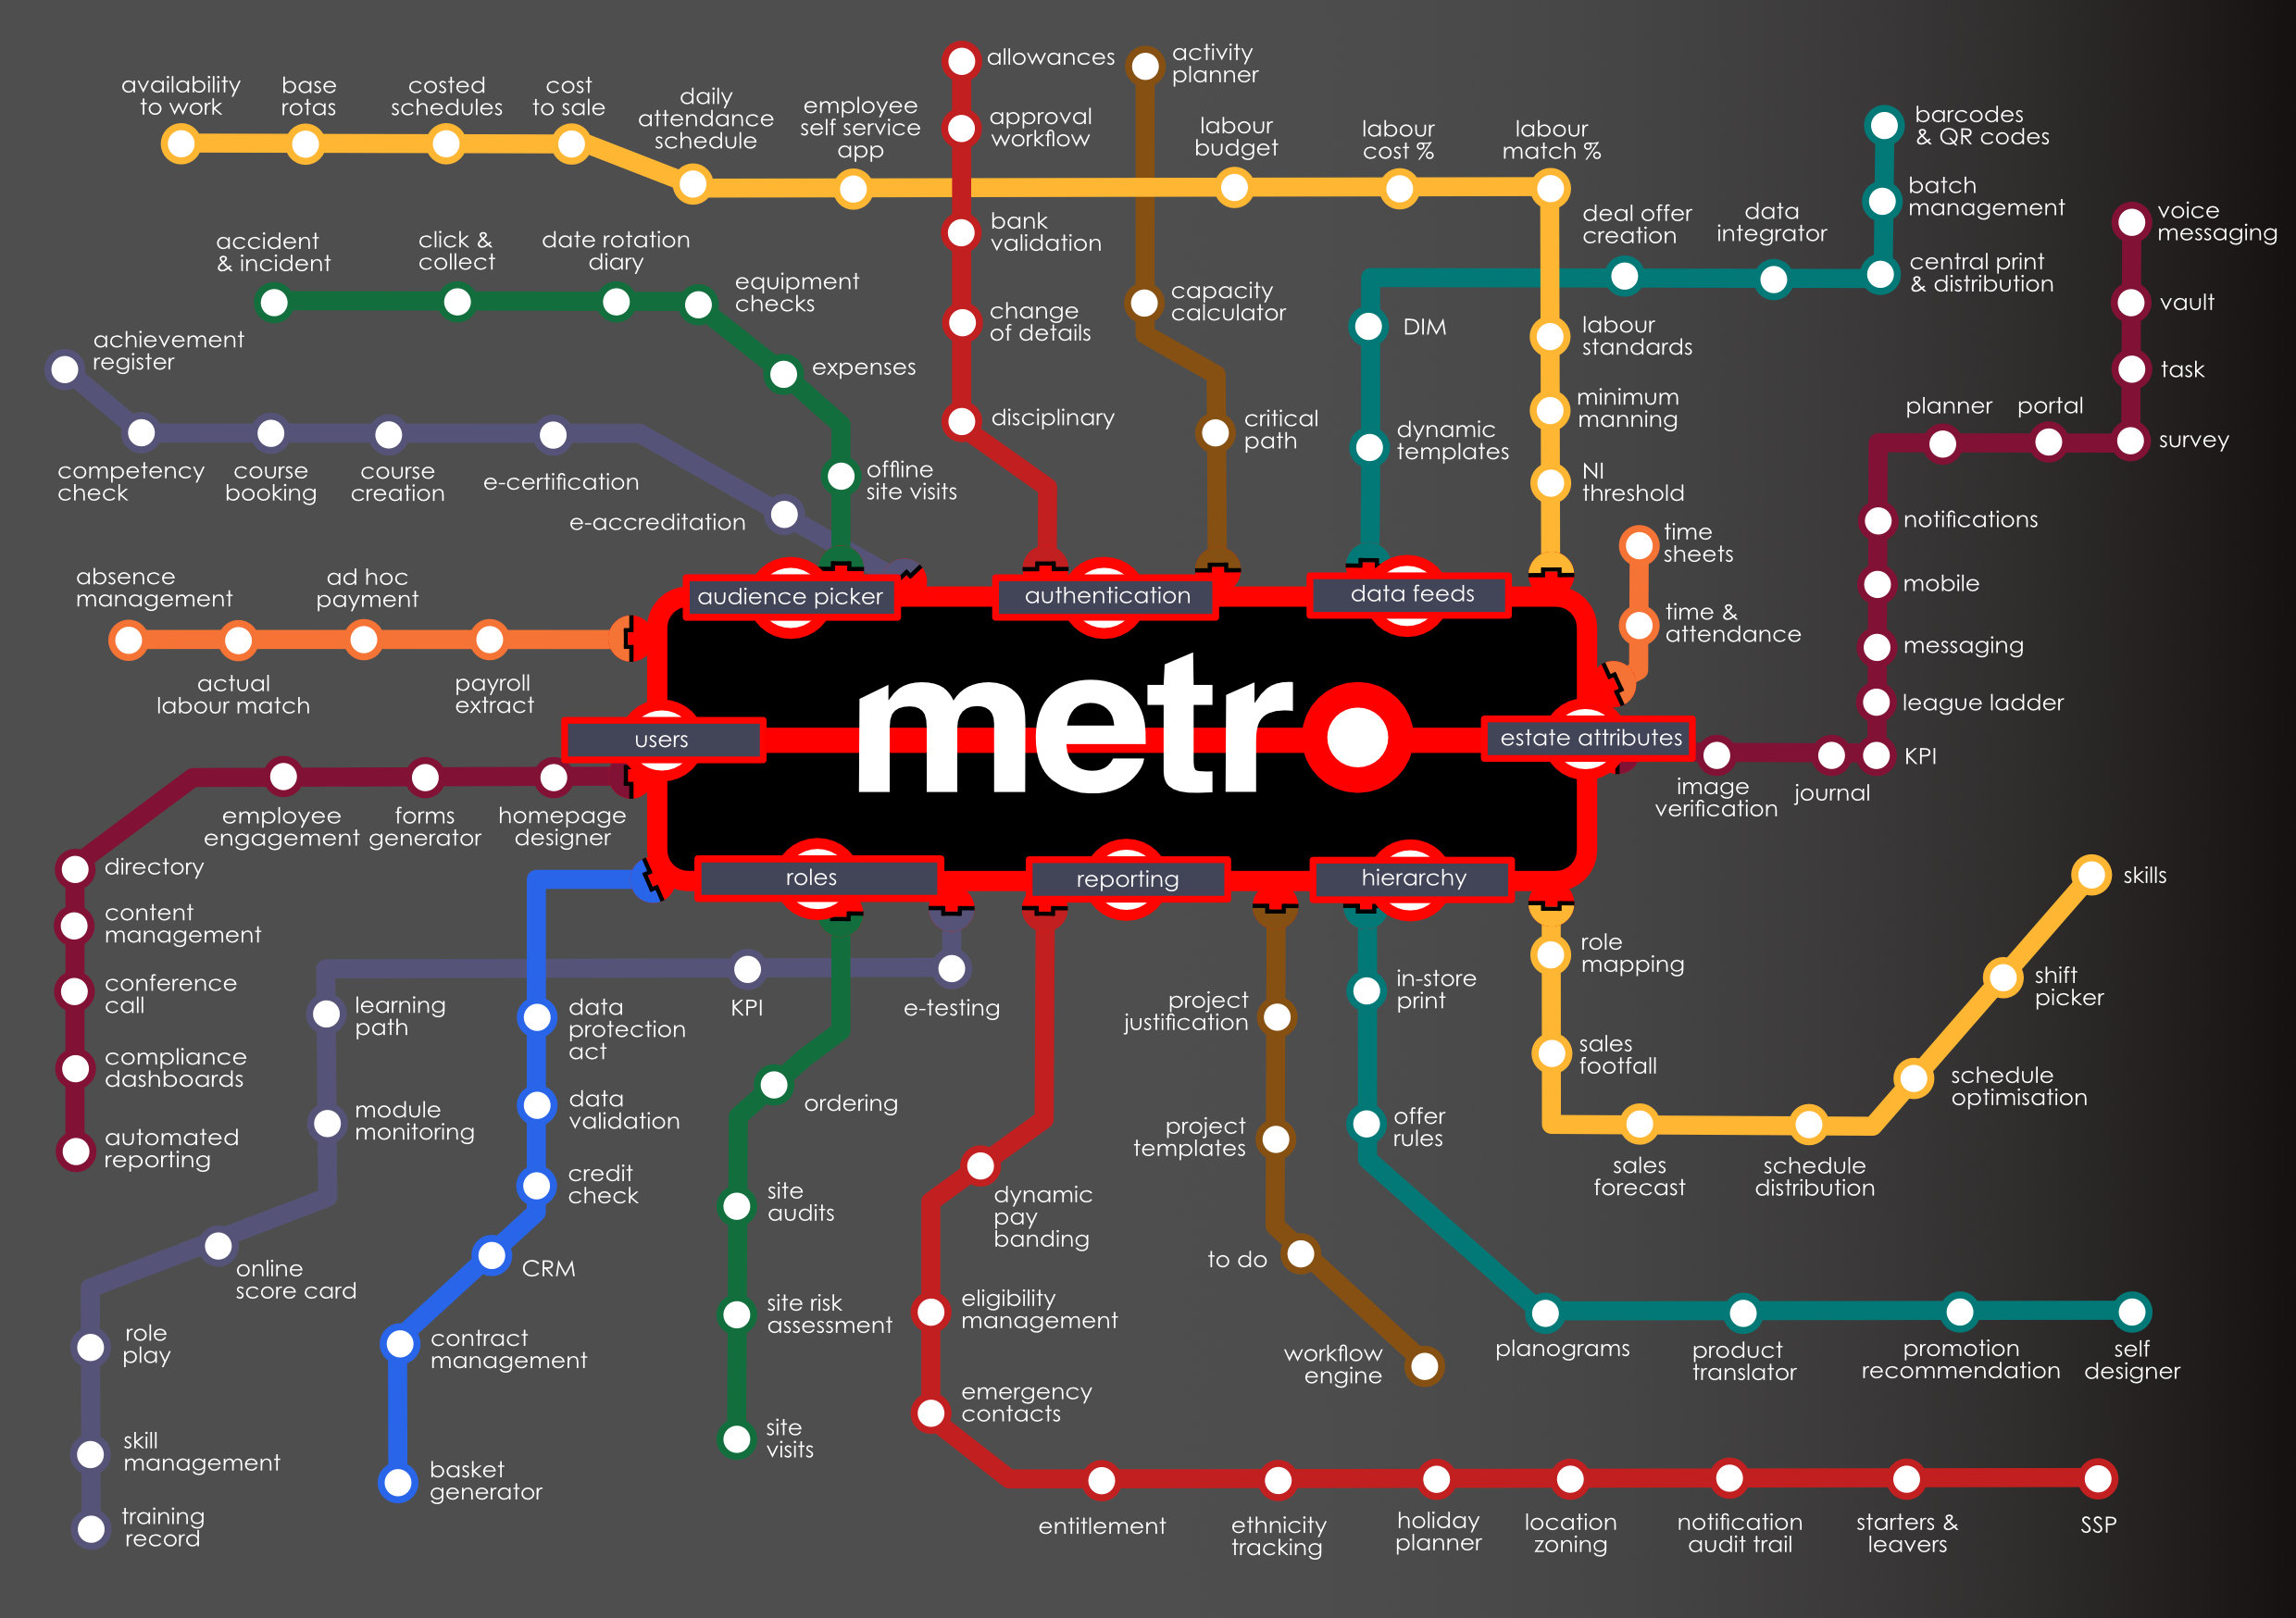 2019 metro map - click to view/download